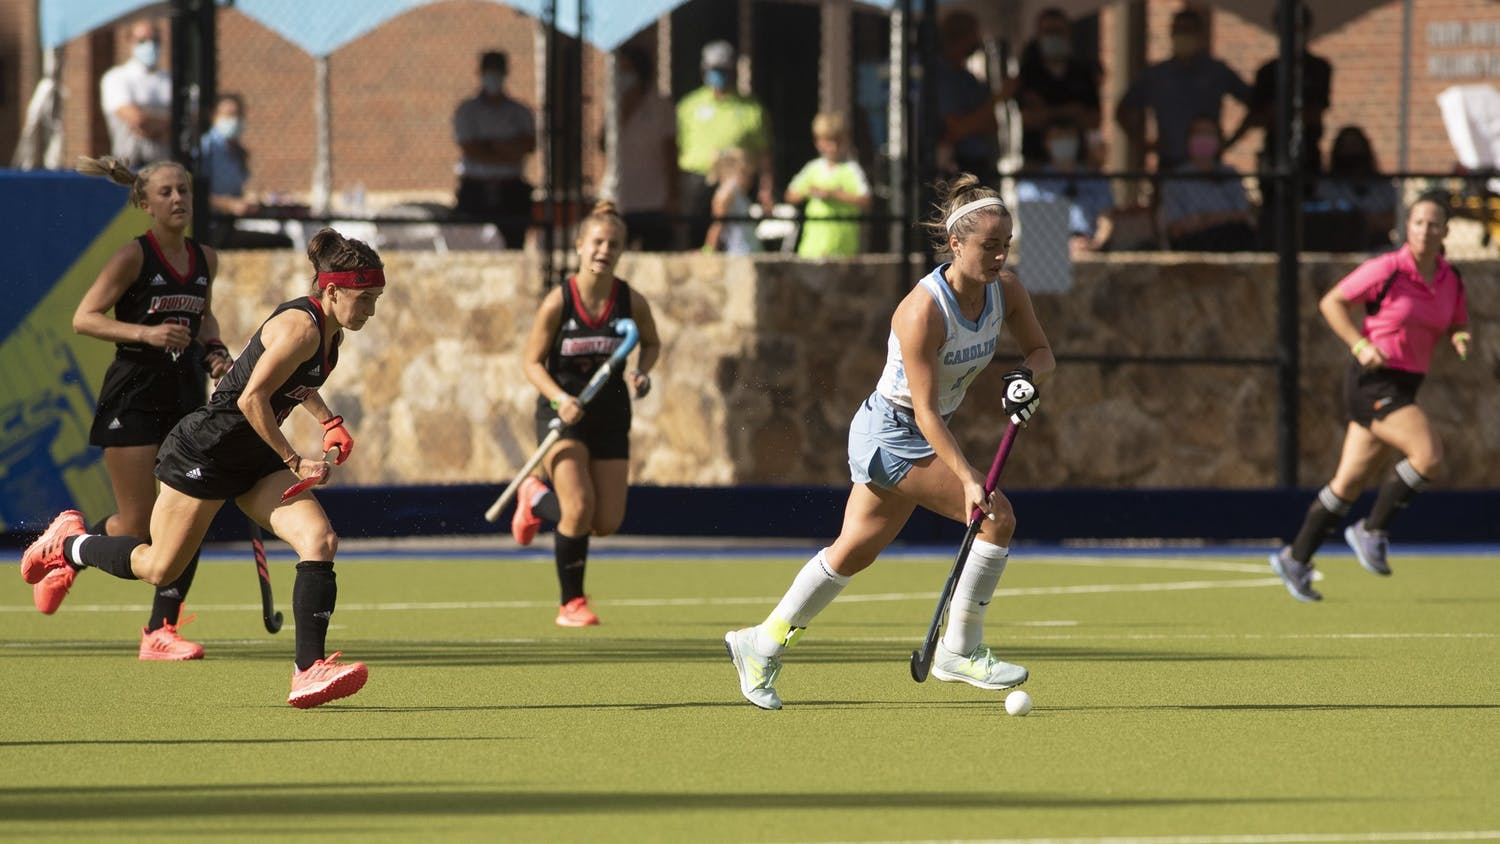 Junior forward Erin Matson (1) drives the ball up the field during the ACC Field Hockey Championship game against Louisville in Karen Shelton Stadium on Nov. 8, 2020. Matson scored two of Carolina's four goals. Carolina defeated the Cardinals 4-2, securing their fourth consecutive tournament title.